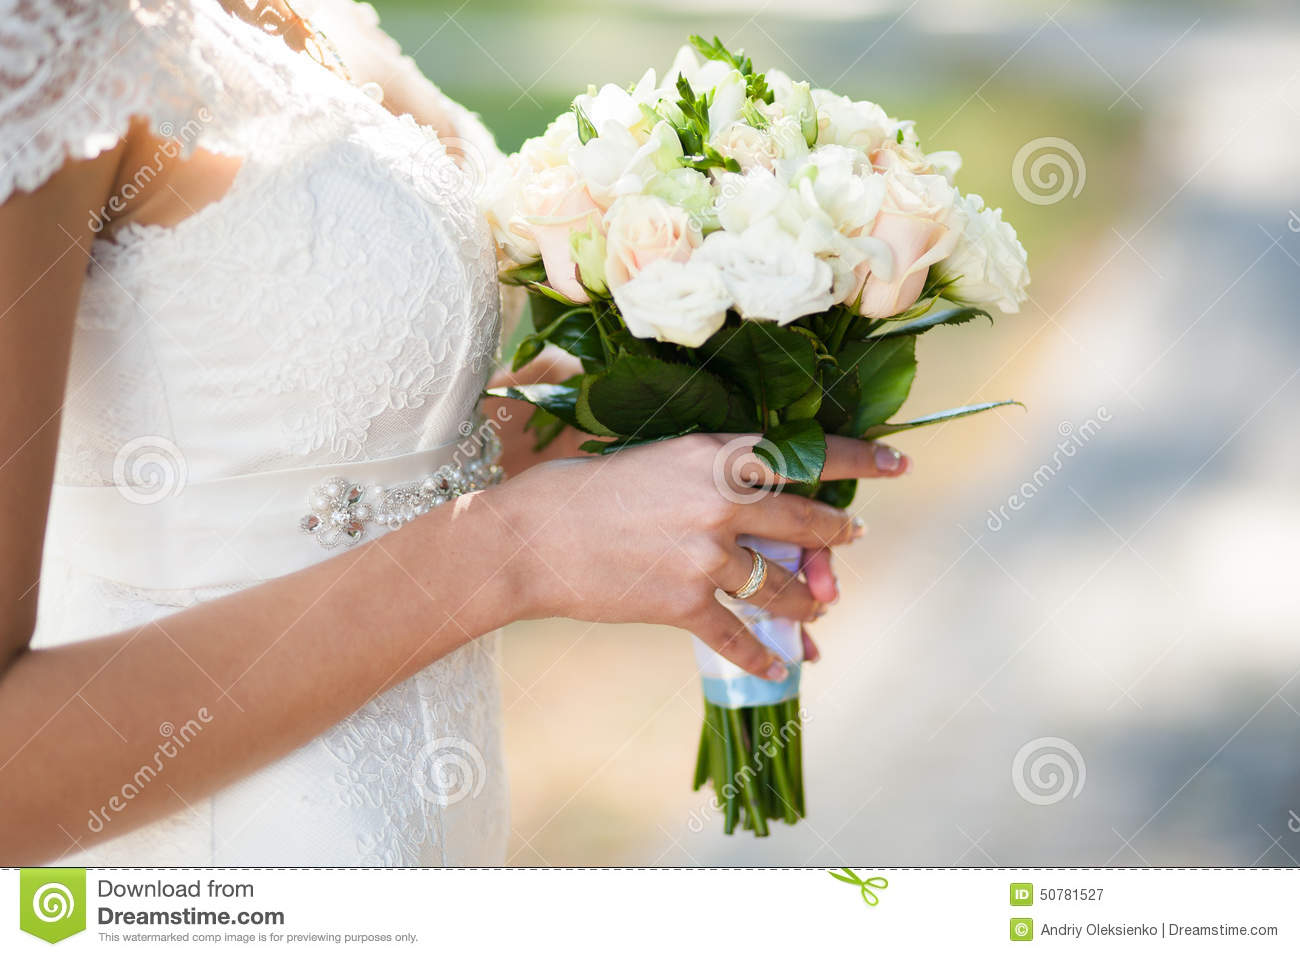 Beautiful Wedding Bouquet Of Flowers In Hands Of Young Bride Stock Photo Image 50781527